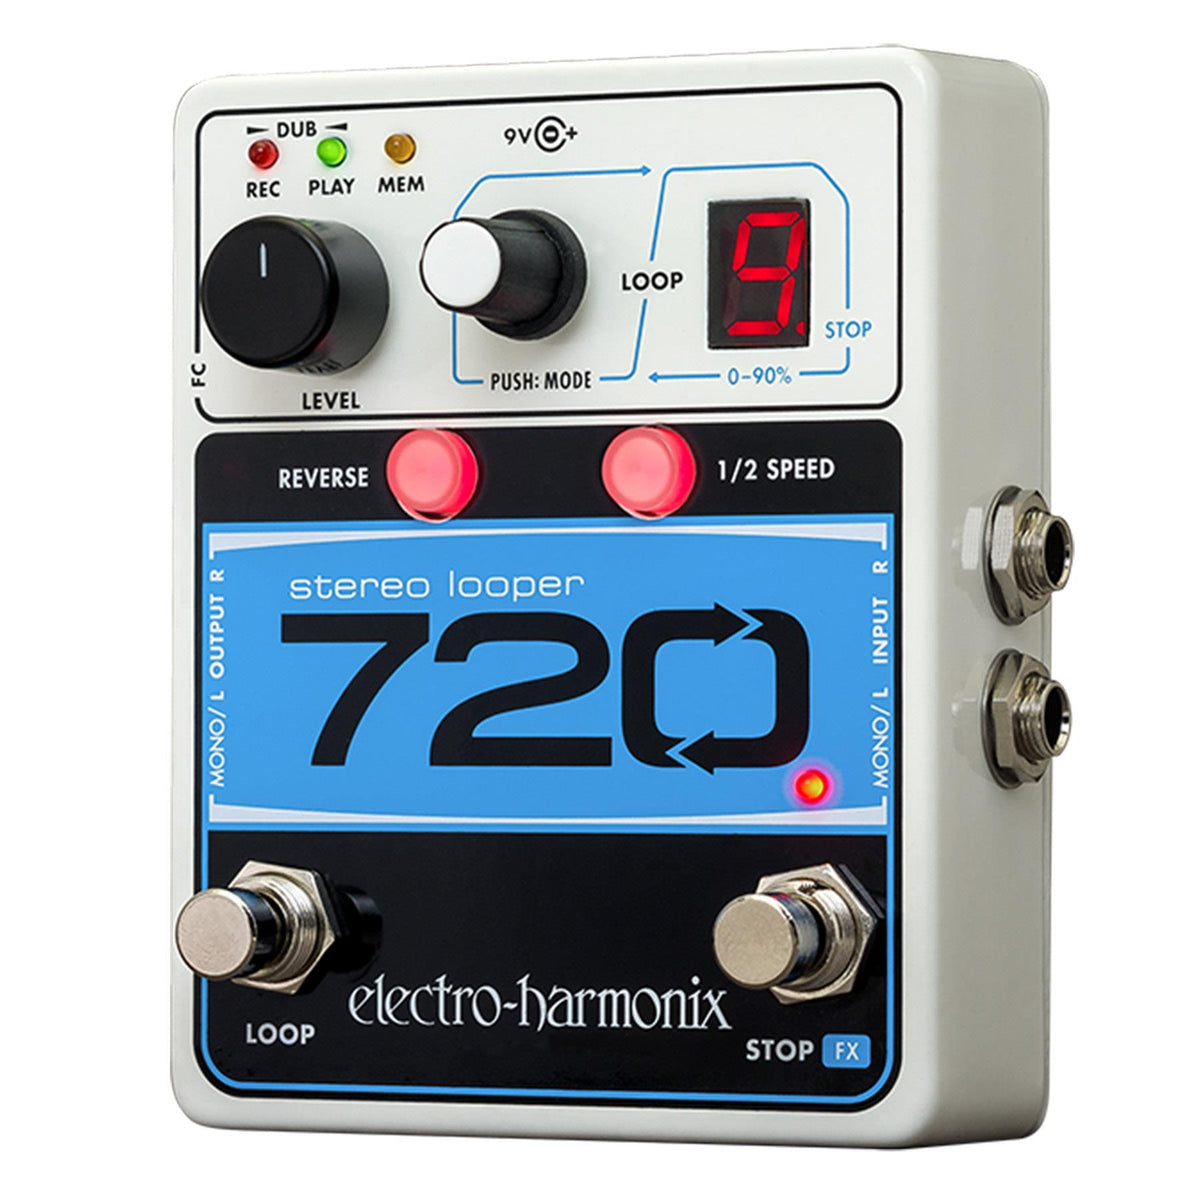 Electro-Harmonix 720 Stereo Looper Guitar Effects Pedal with Power Supply